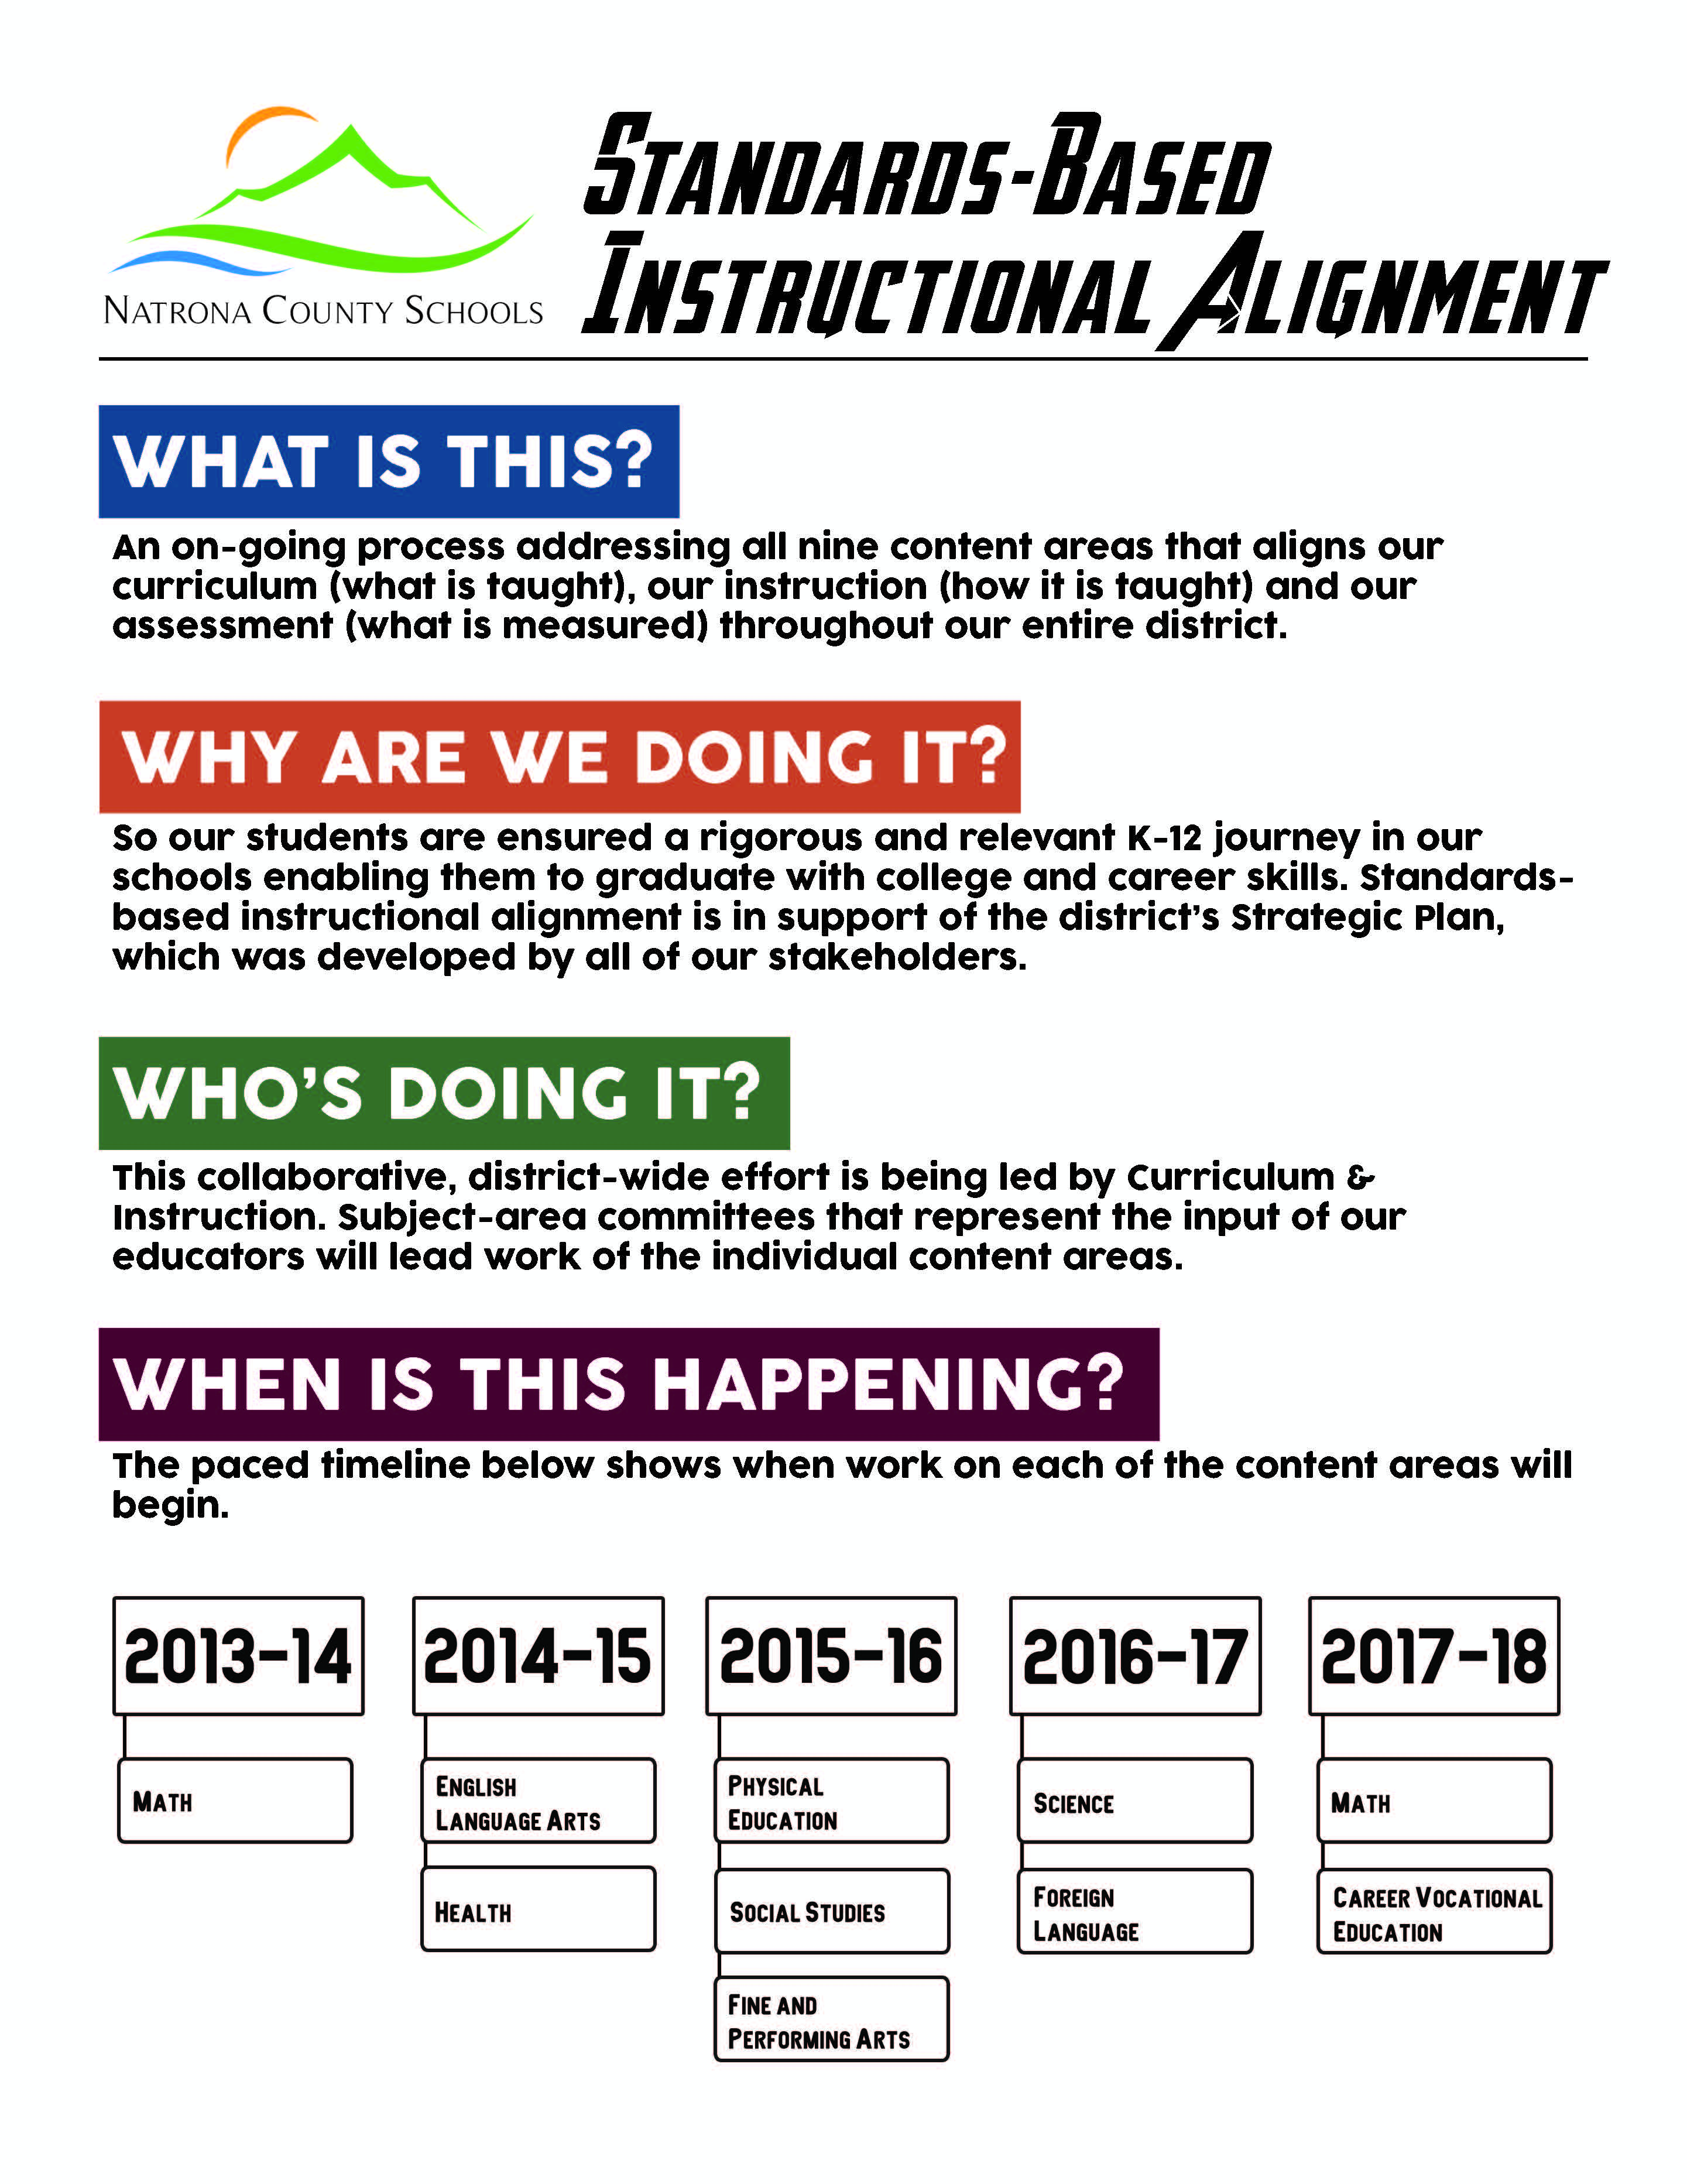 Standards- Based Instructional Alignment at NCSD